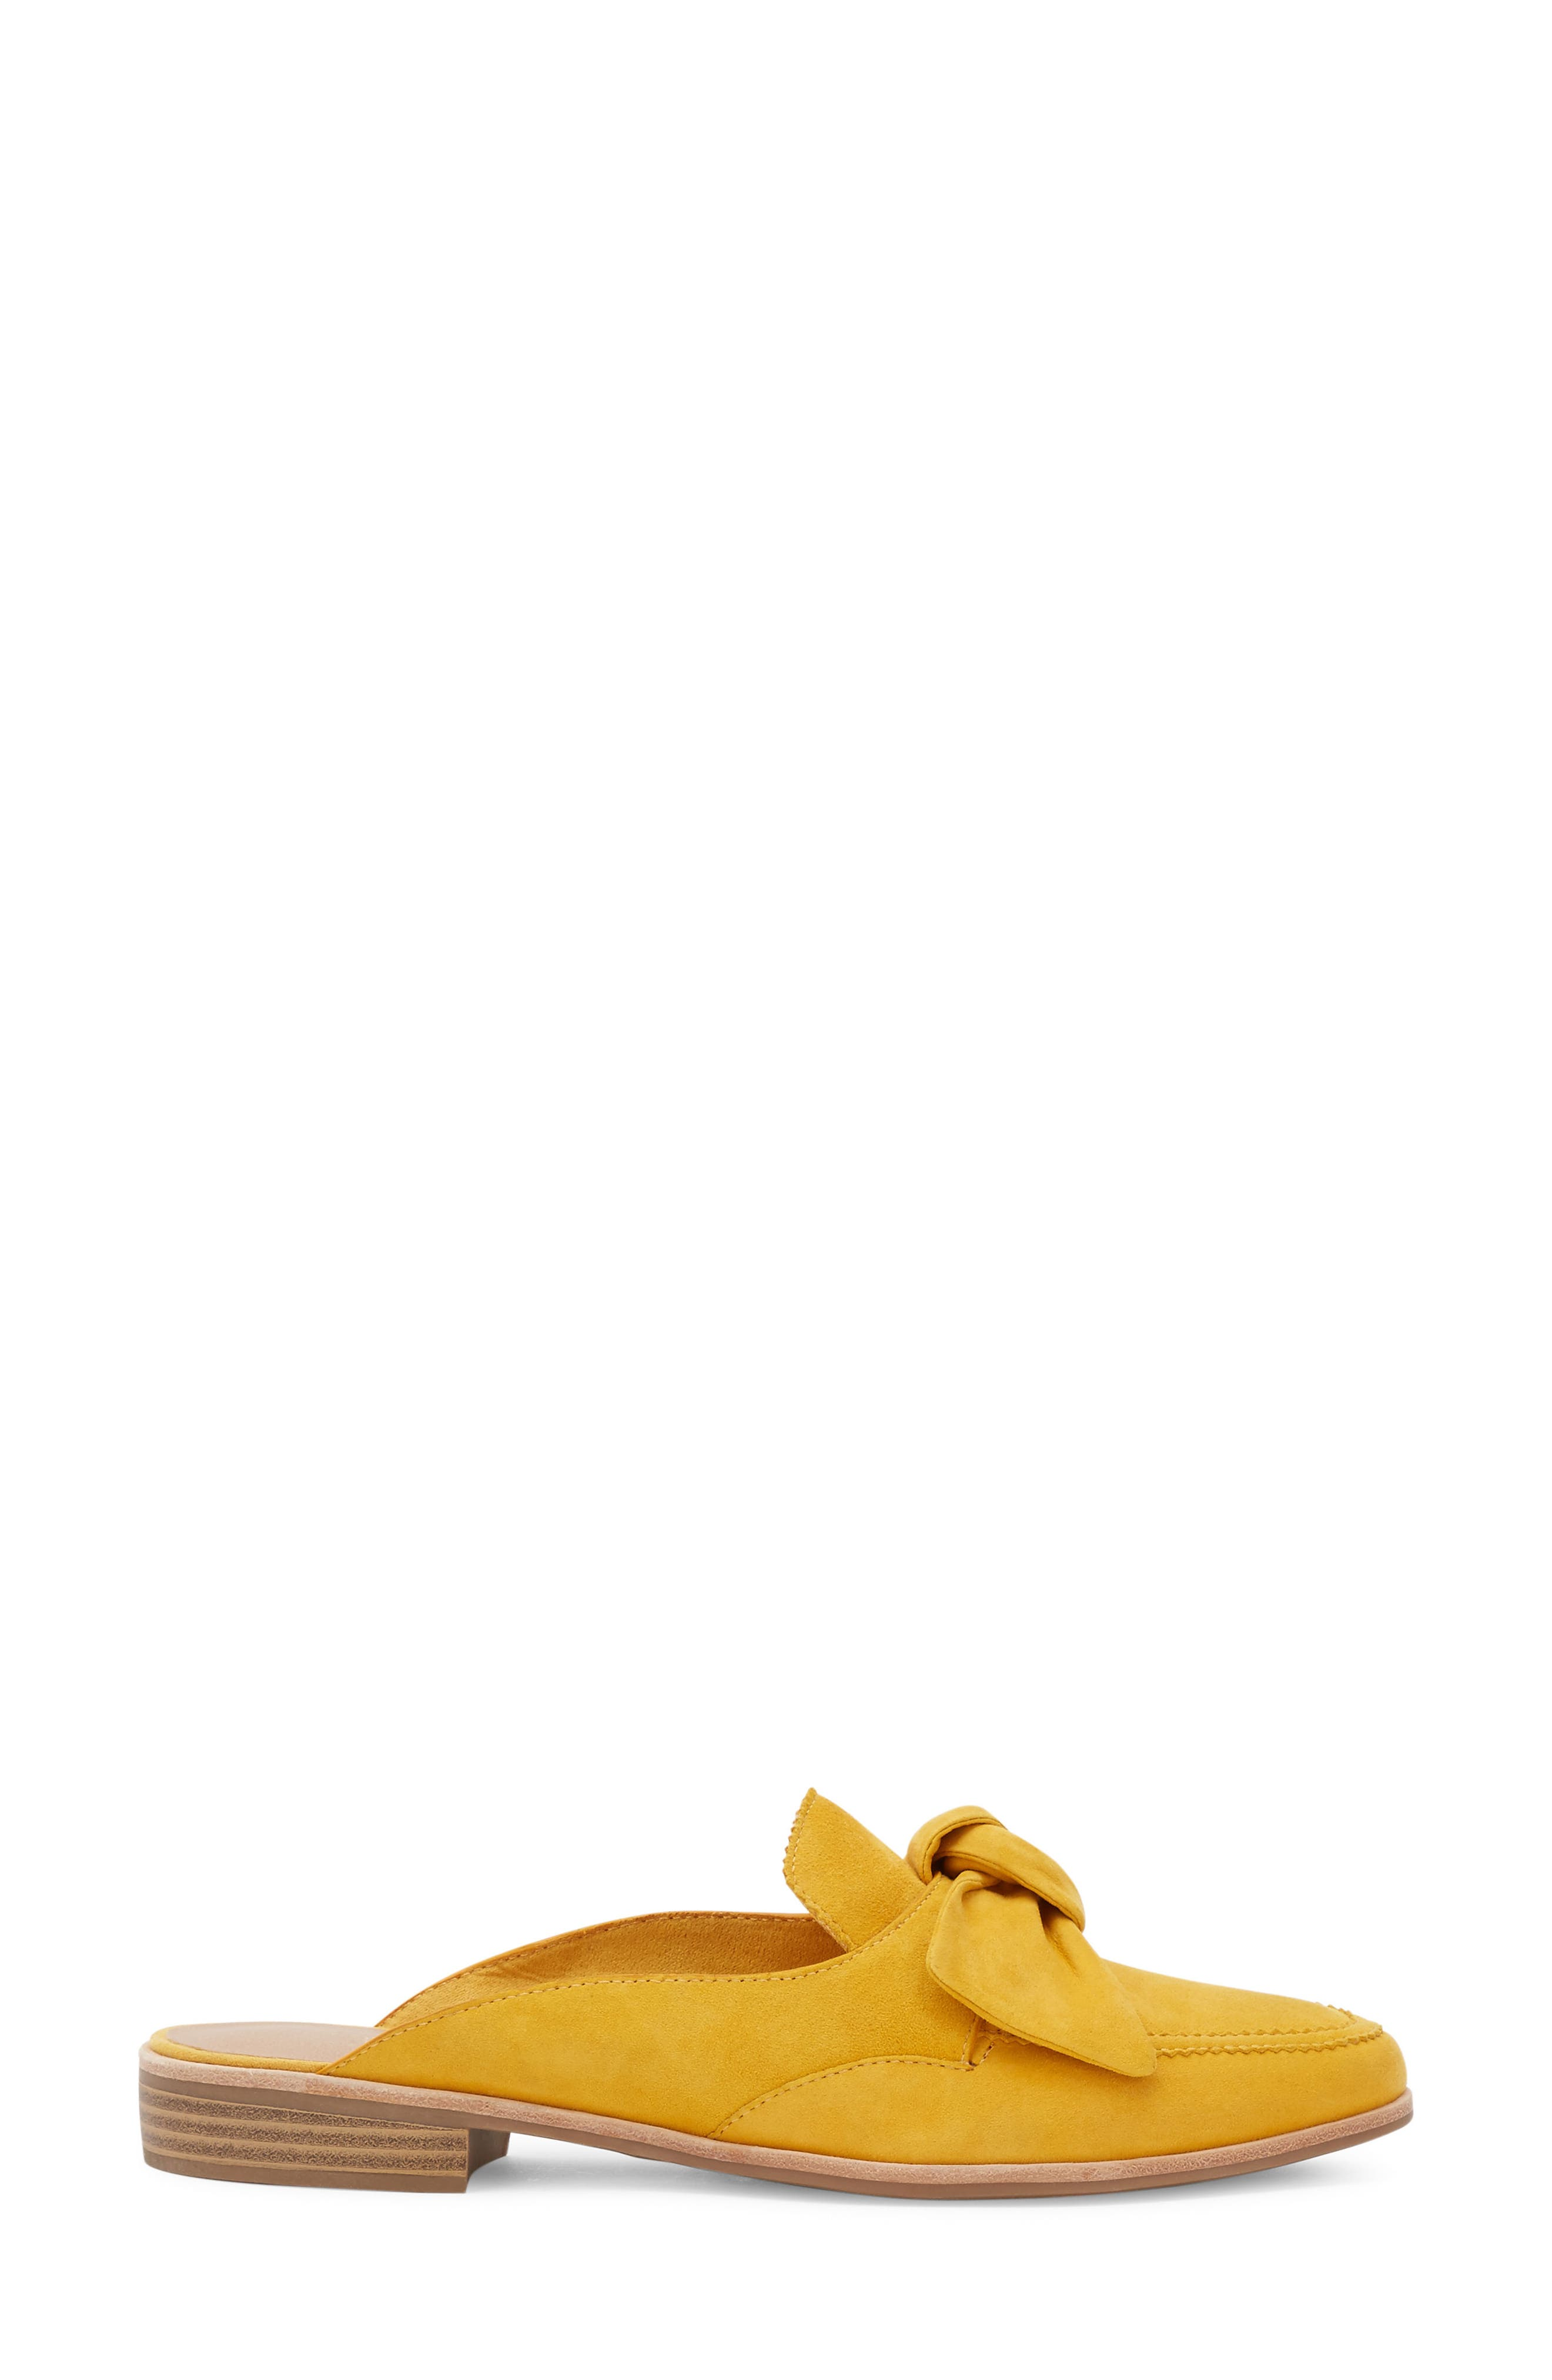 Ebbie Bow Mule,                             Alternate thumbnail 3, color,                             YELLOW SUEDE